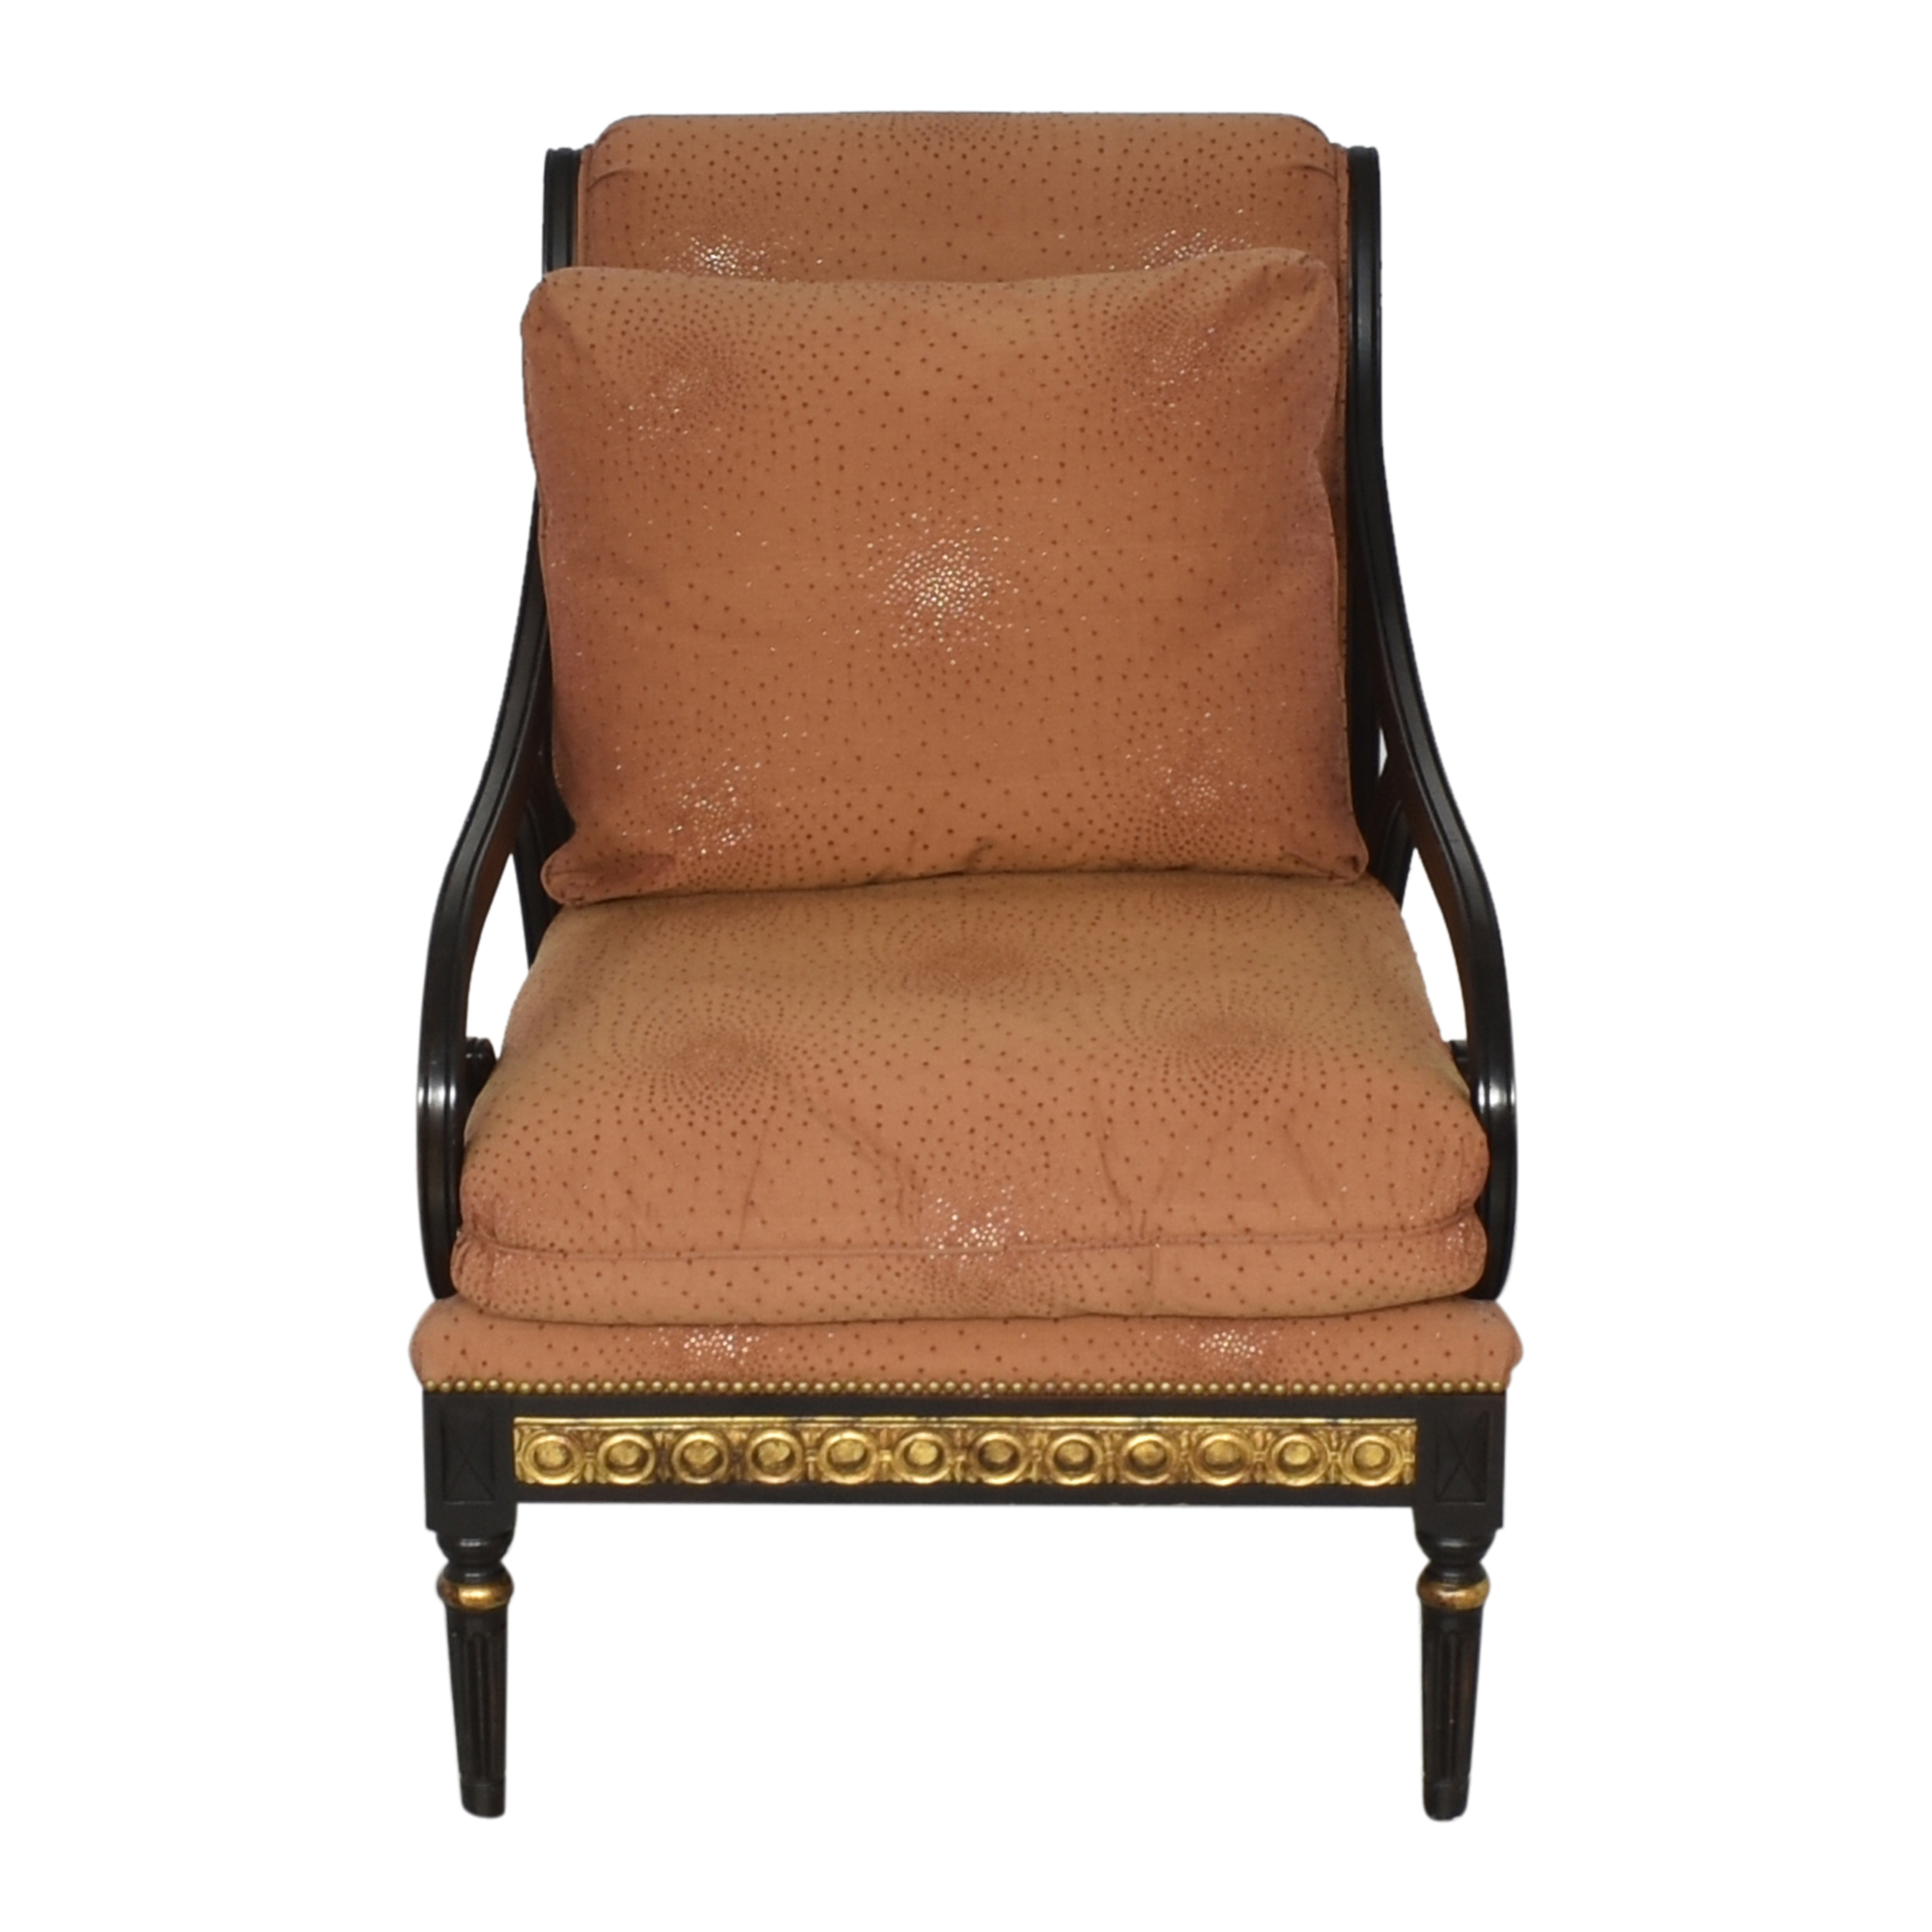 IMI Furniture Scroll Arm Accent Chair / Accent Chairs